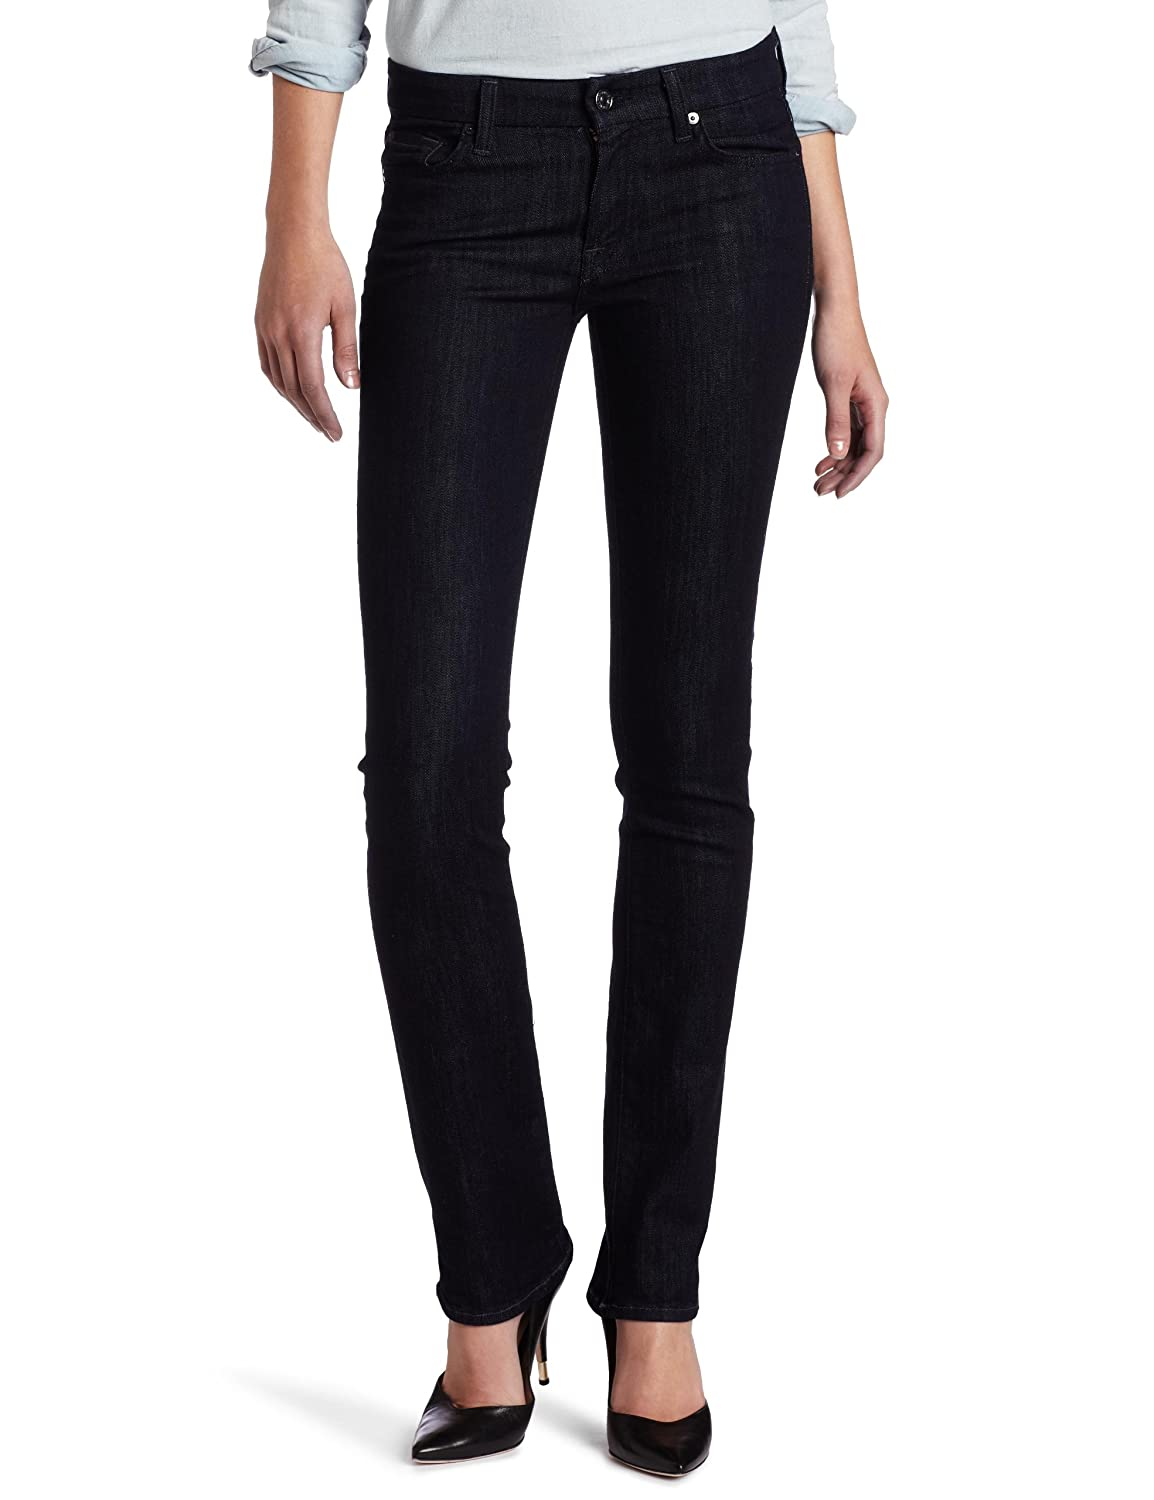 7 For All Mankind Women's Kimmie Straight Leg Jean in New Rinse